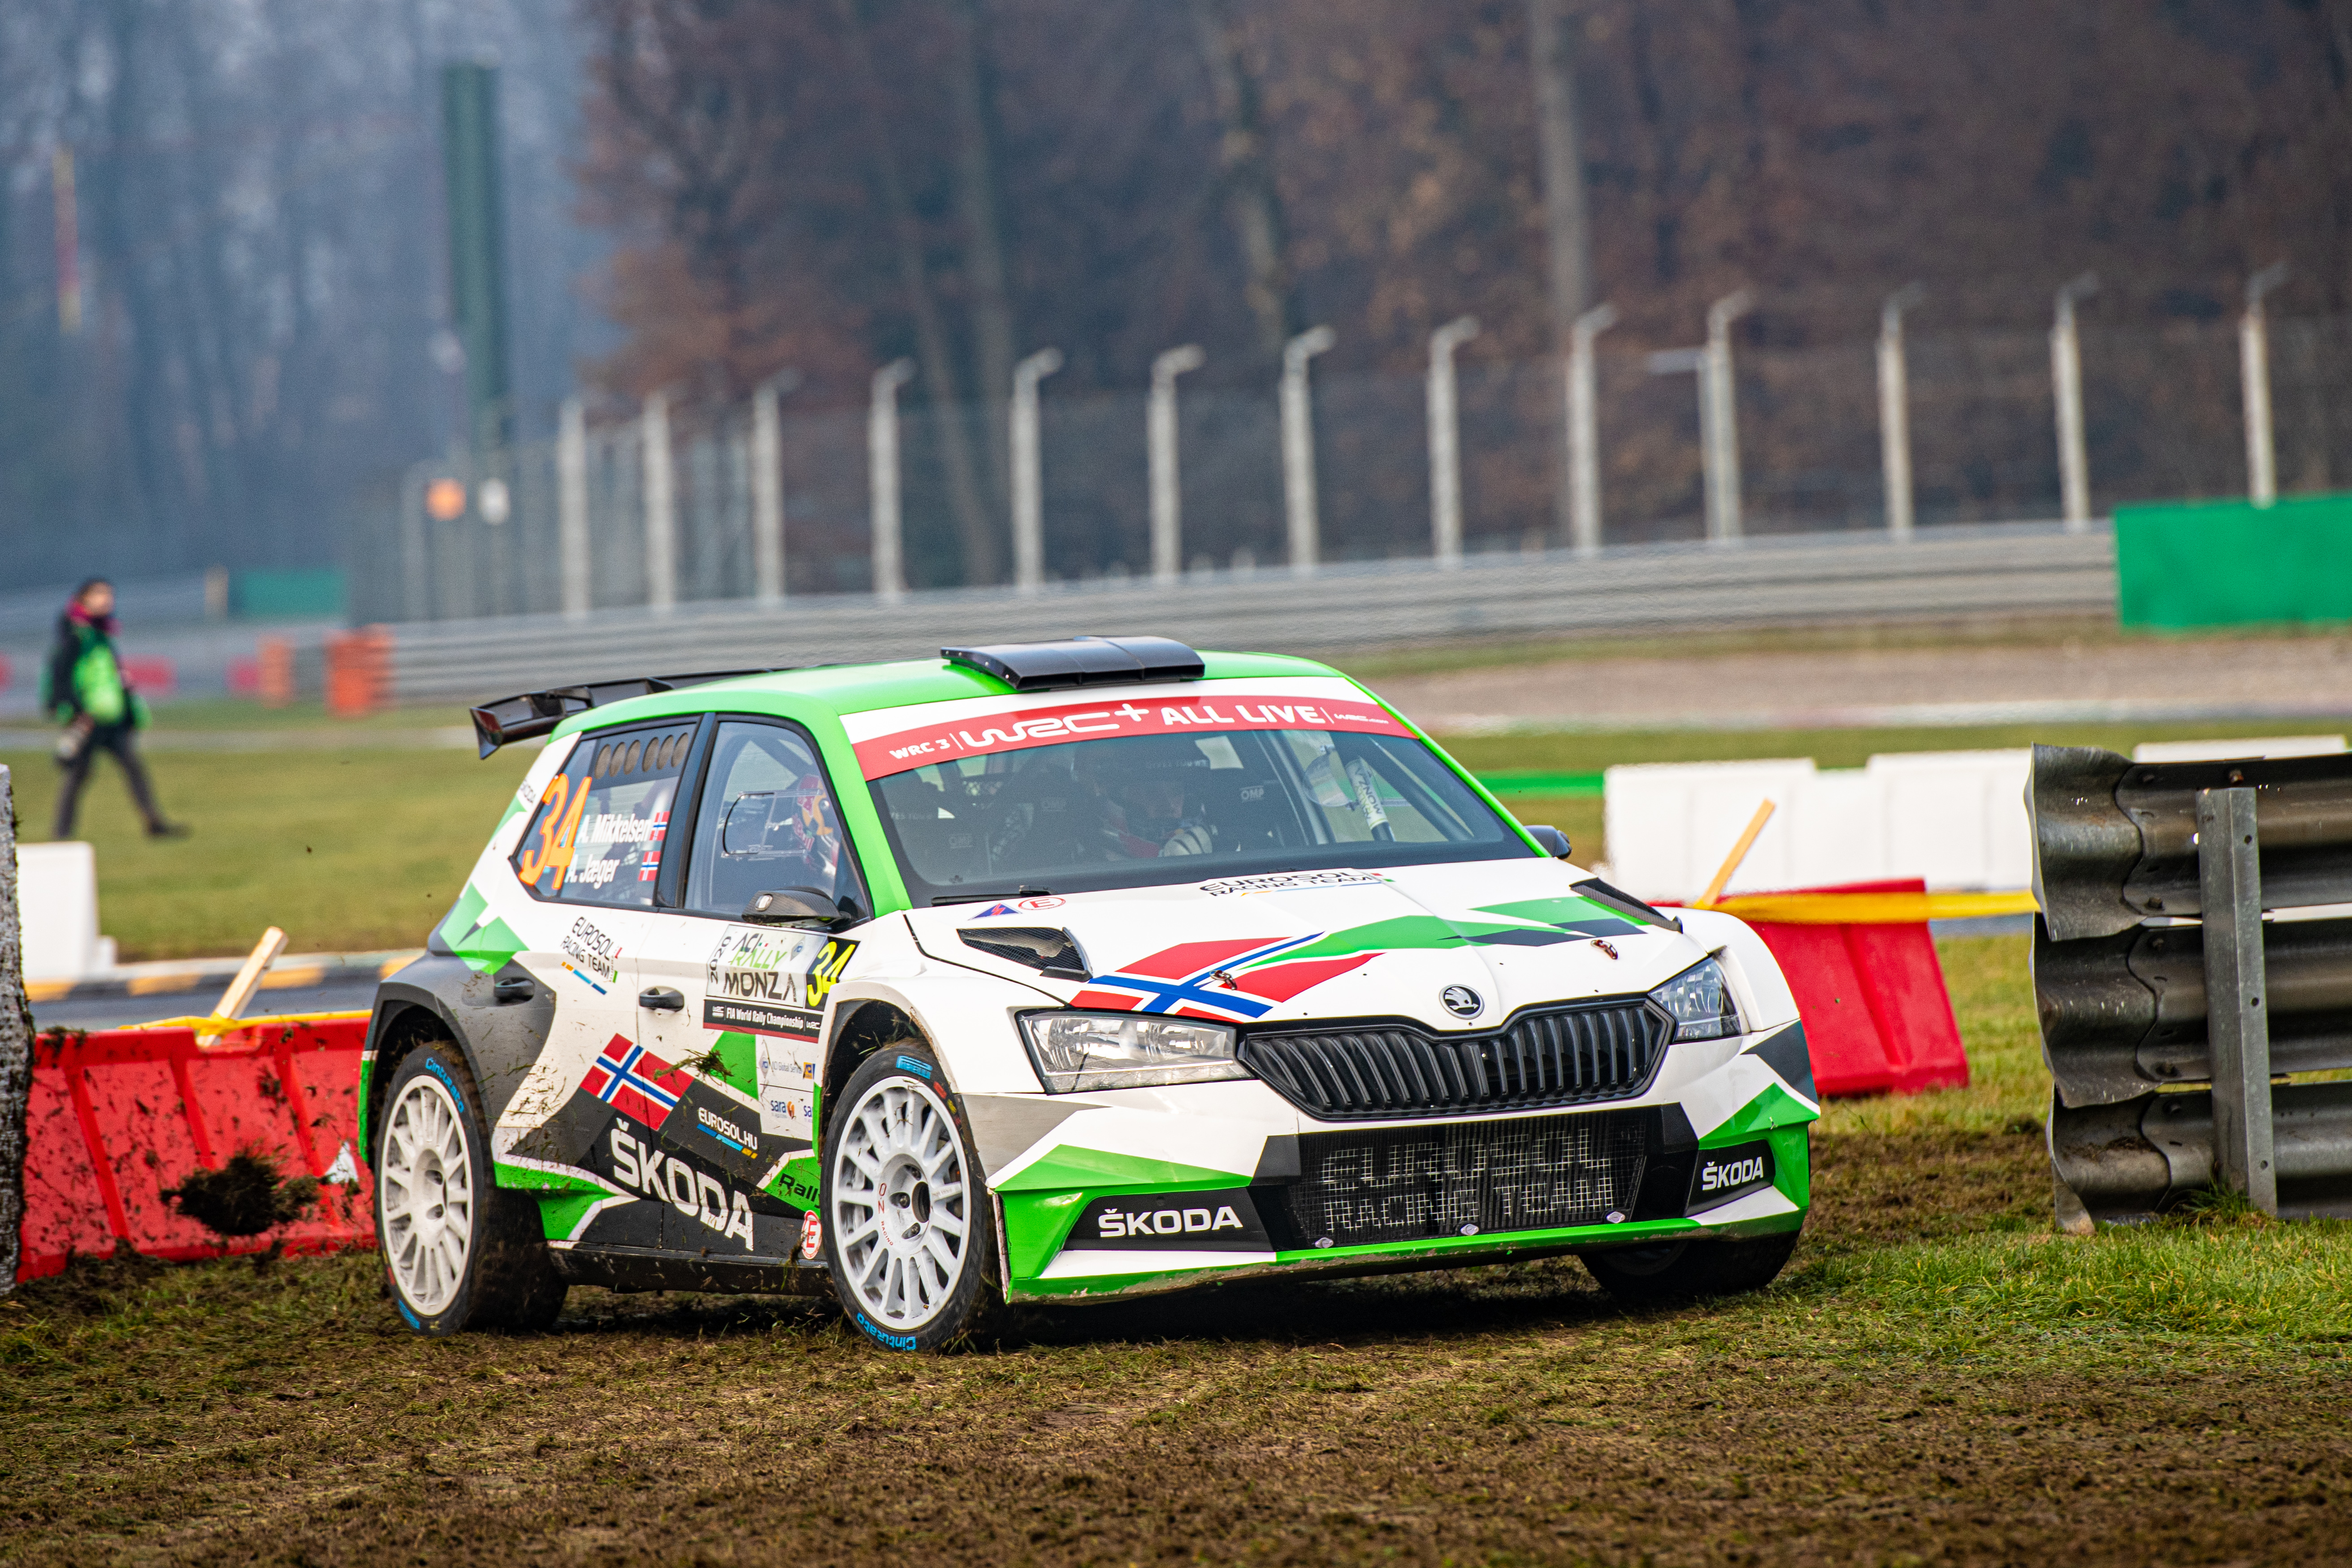 SKODA customers again successful around the world in a challenging rally season 2020 - Image 3